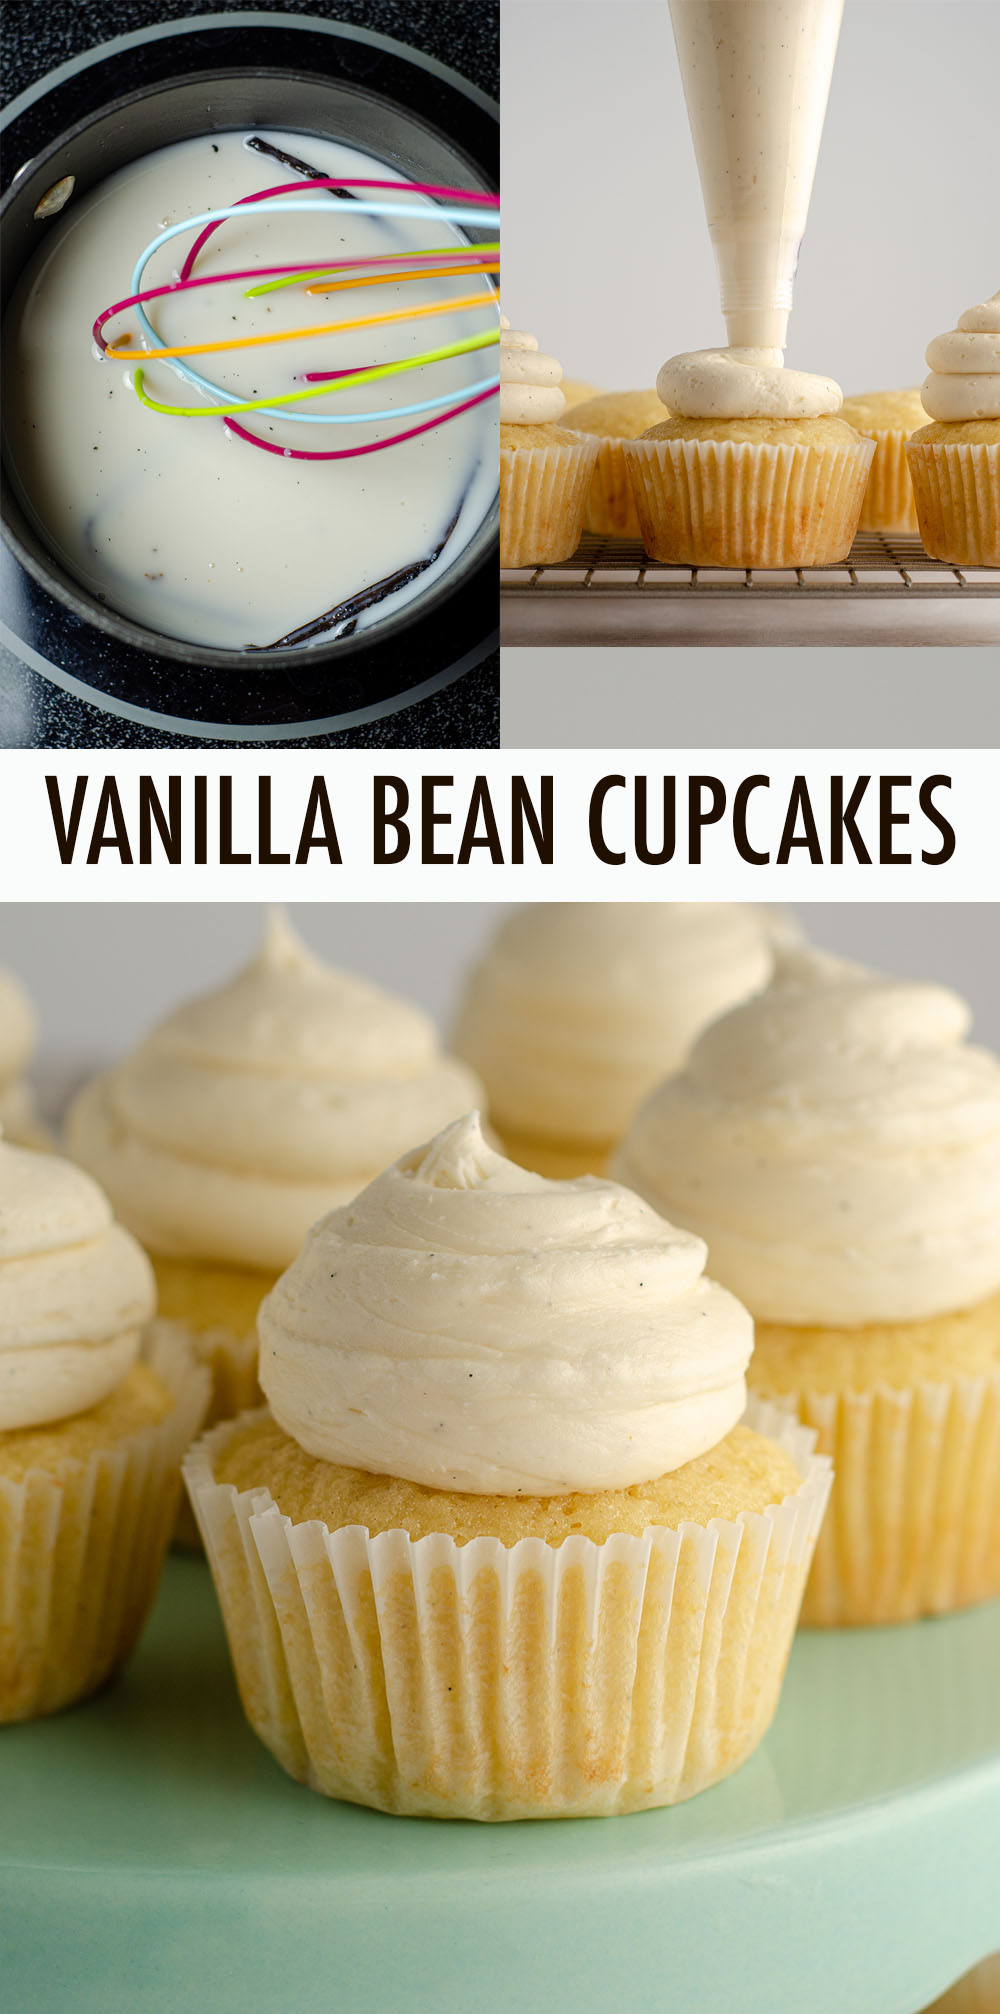 A moist and tender basic vanilla cupcake made extra flavorful with vanilla bean infused cream. Topped off with vanilla bean buttercream, these cupcakes are vanilla heaven!